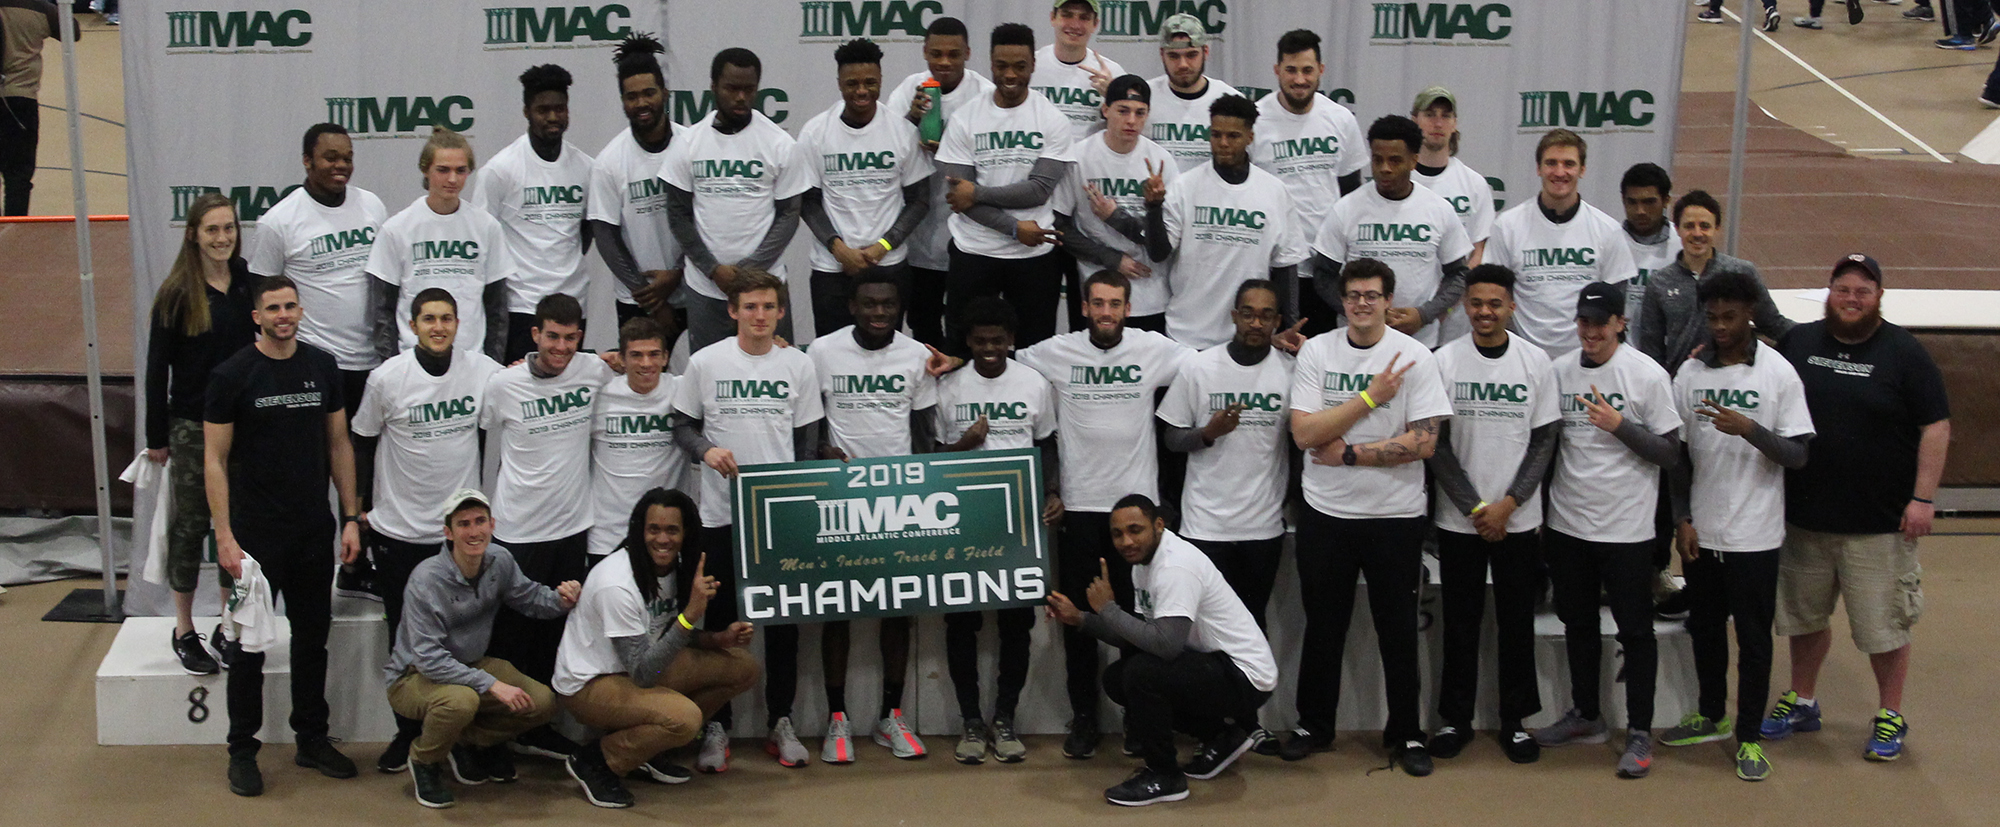 Mustangs Repeat as MAC Indoor Track and Field Champions